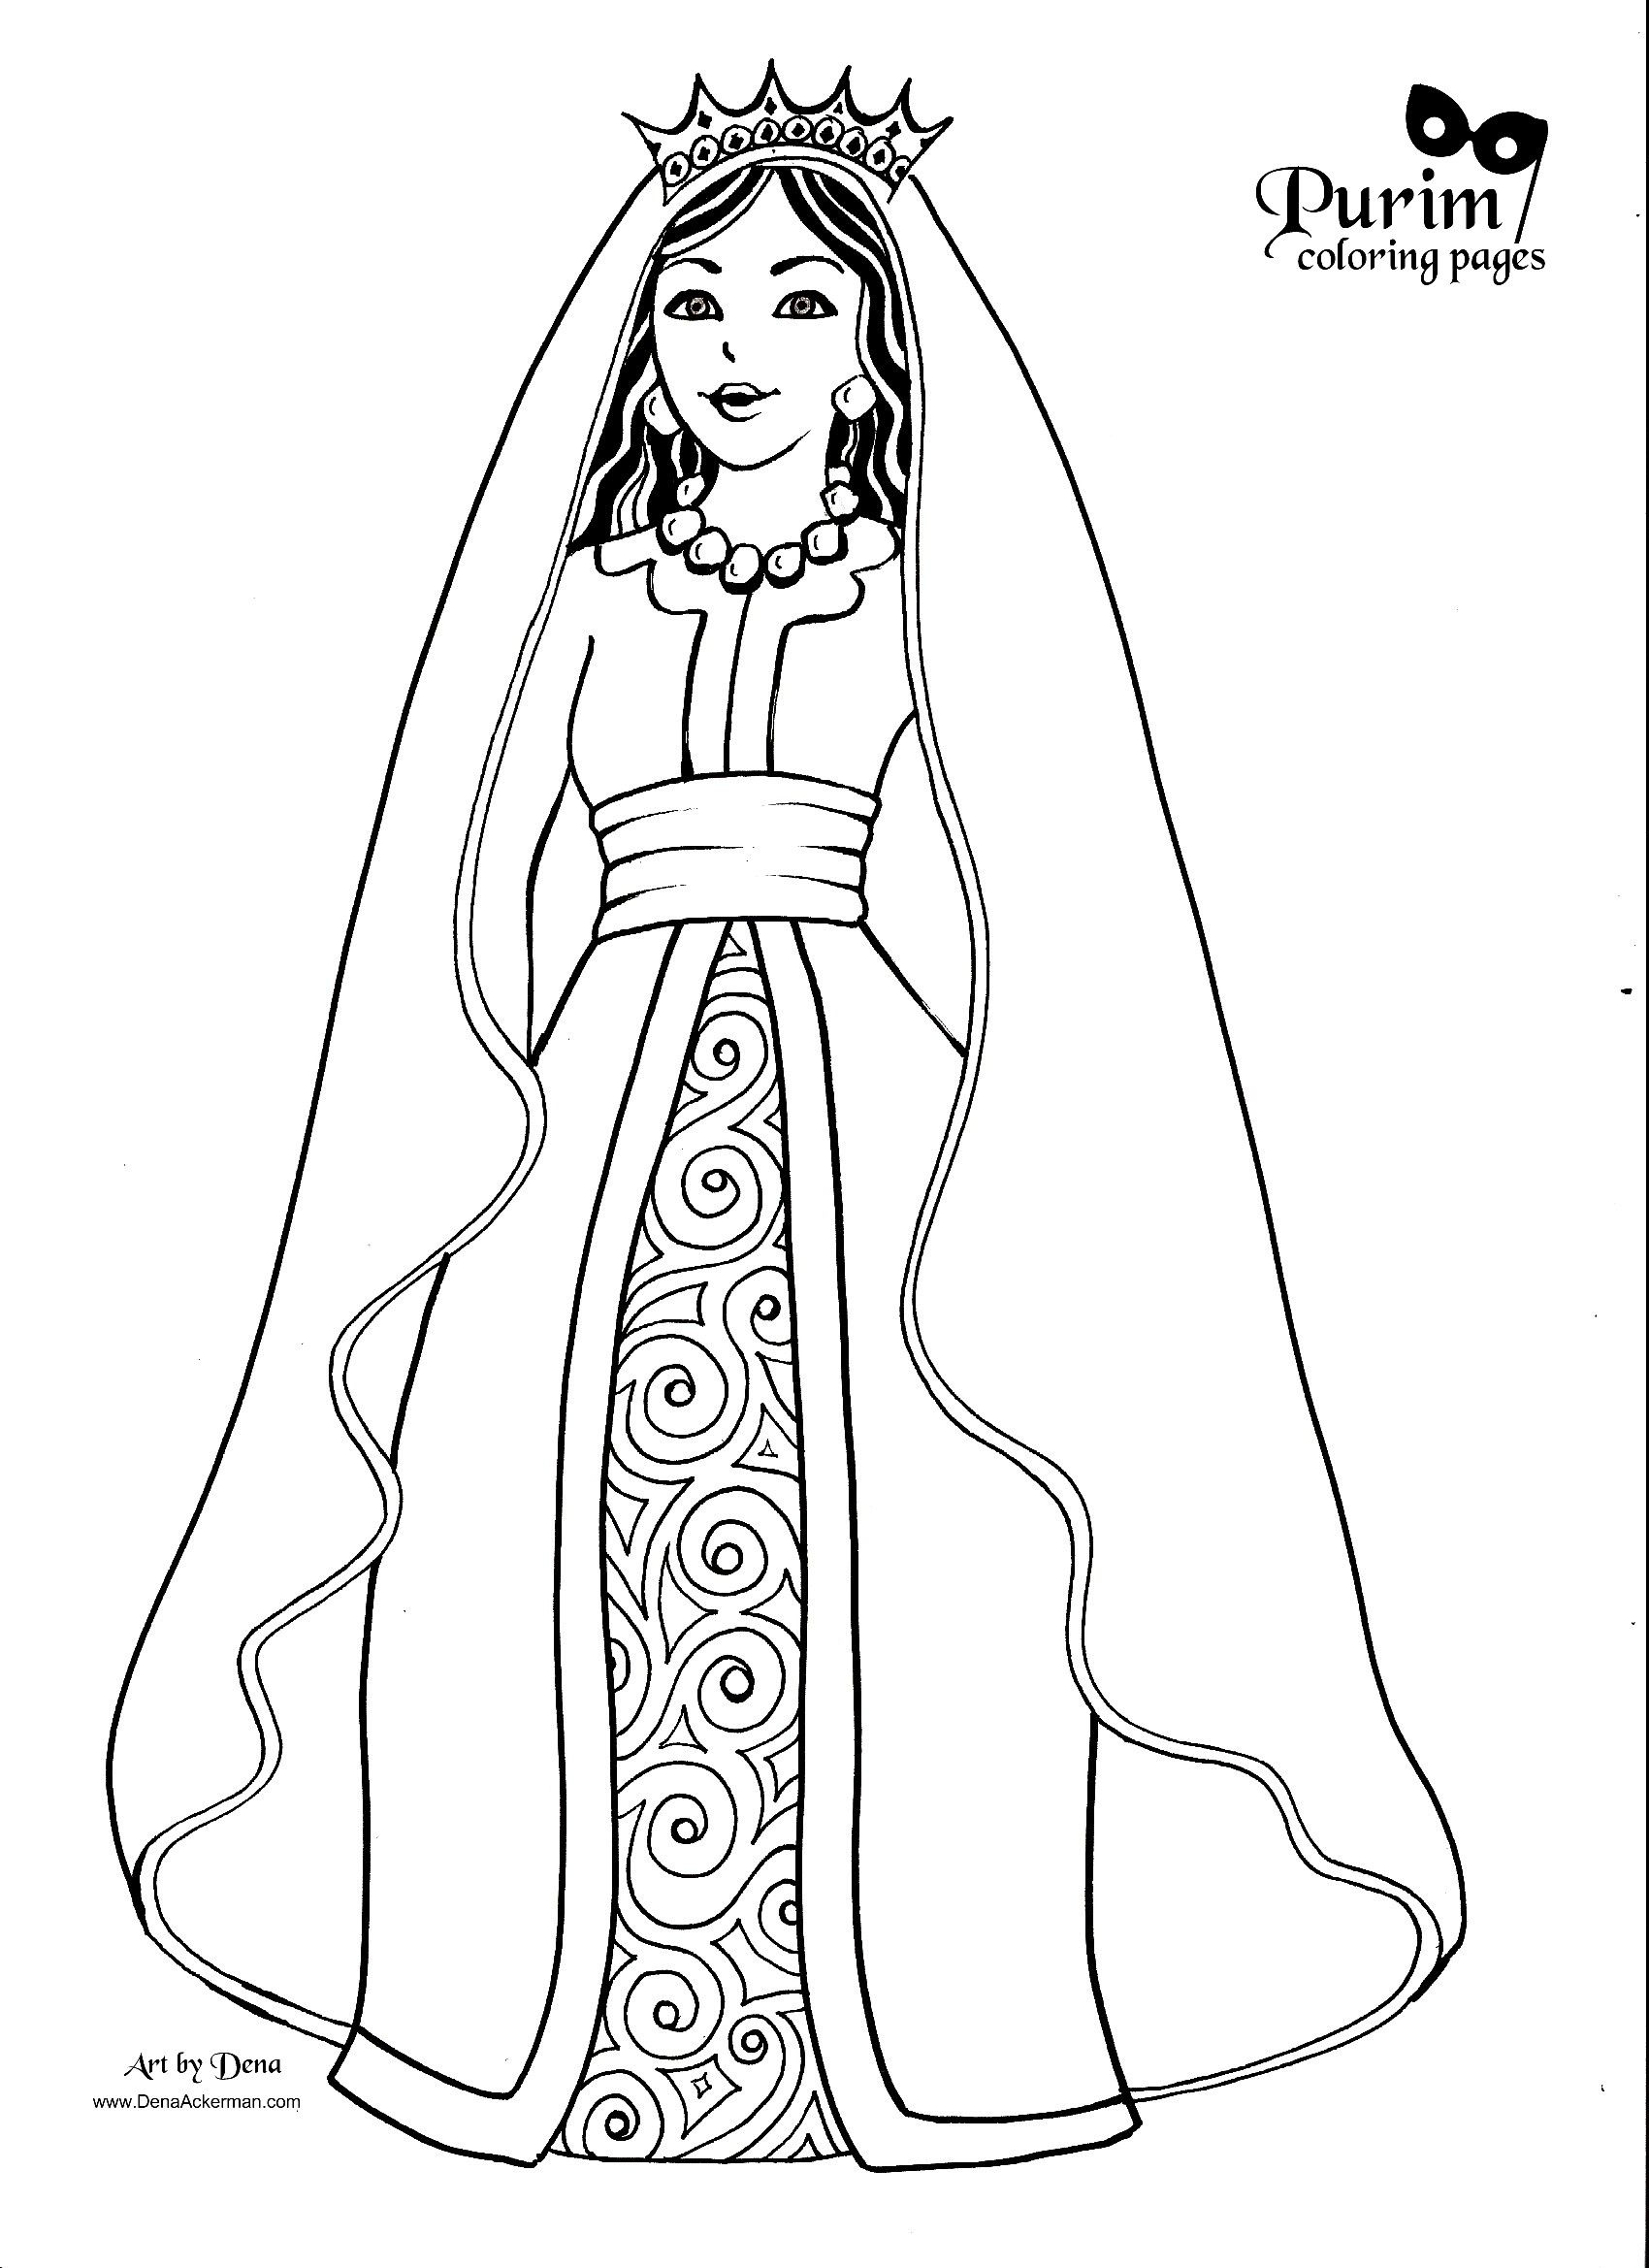 Esther this page has great coloring pages for Purim Celebrate